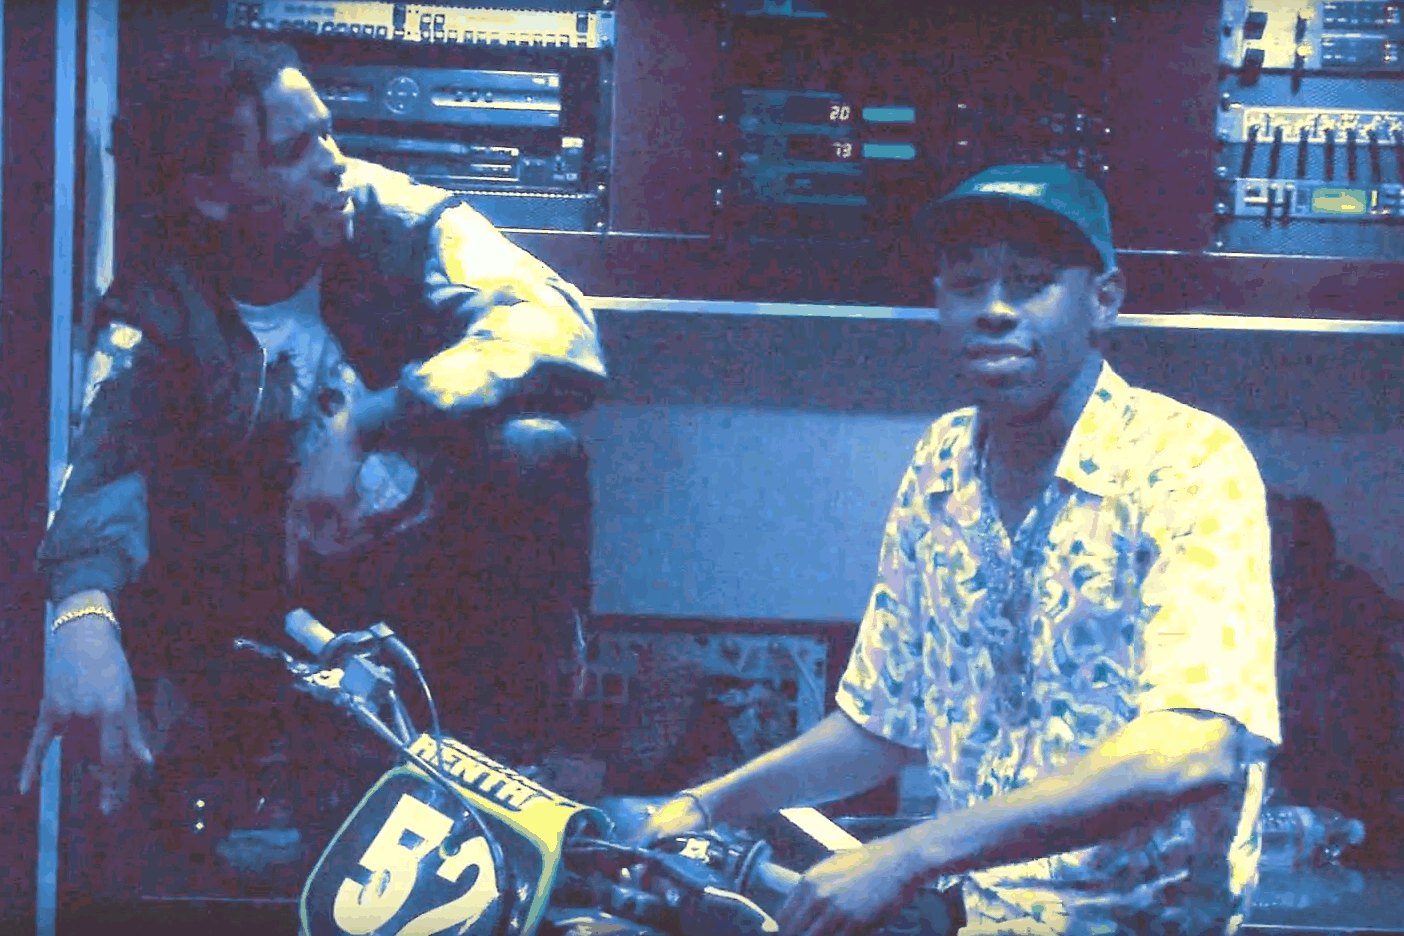 tyler the creator kanye west freestyle 4 remix what the f right now watch video